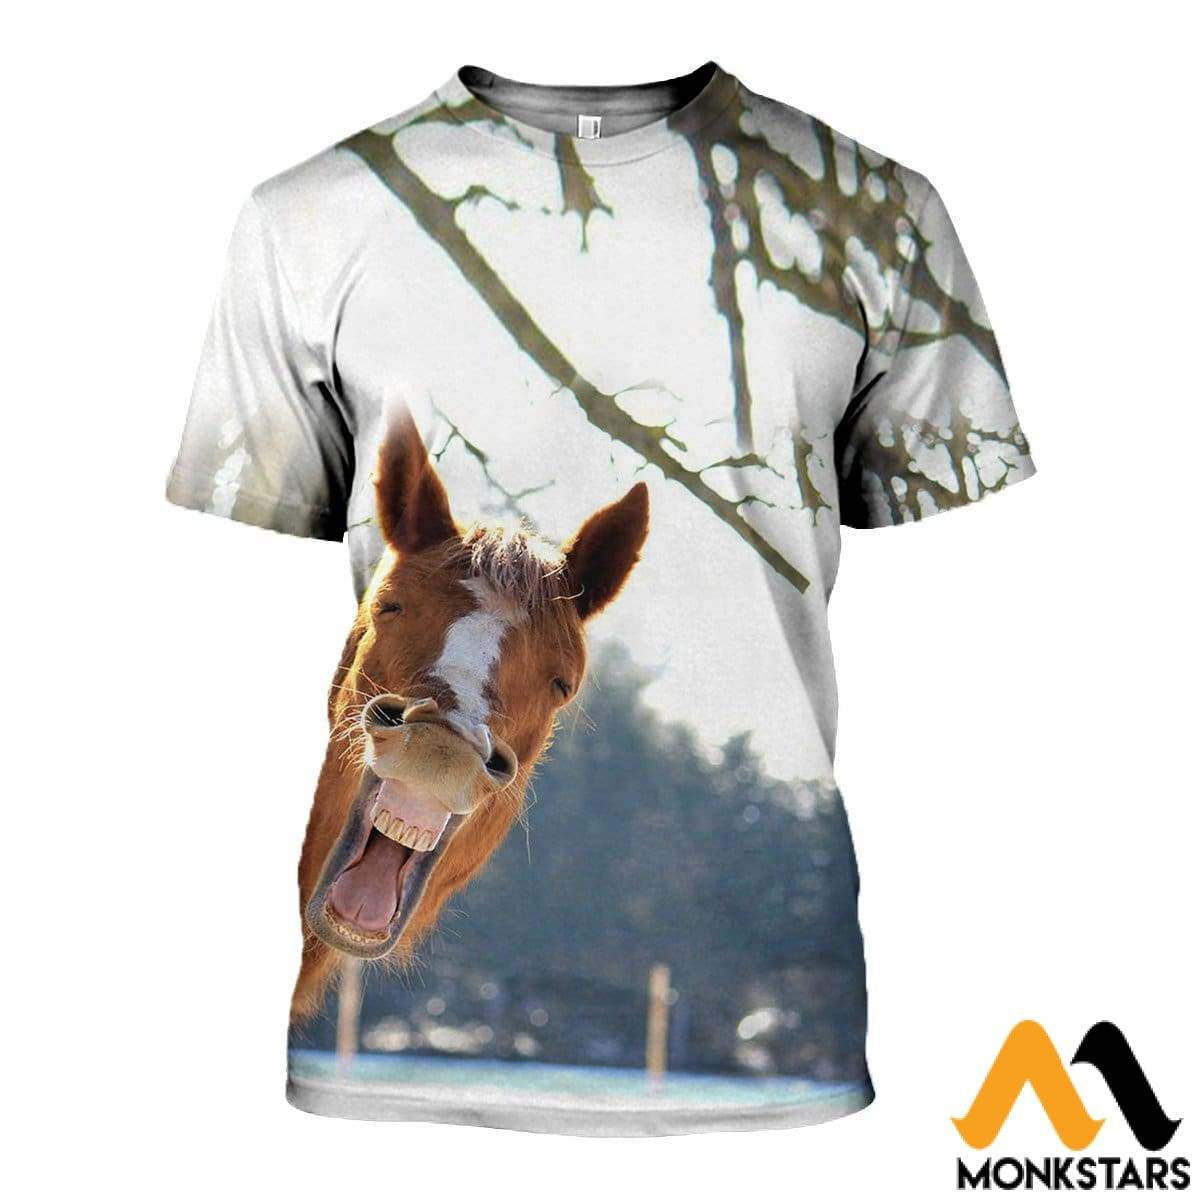 3D Printed Horse Clothes T-Shirt / Xs